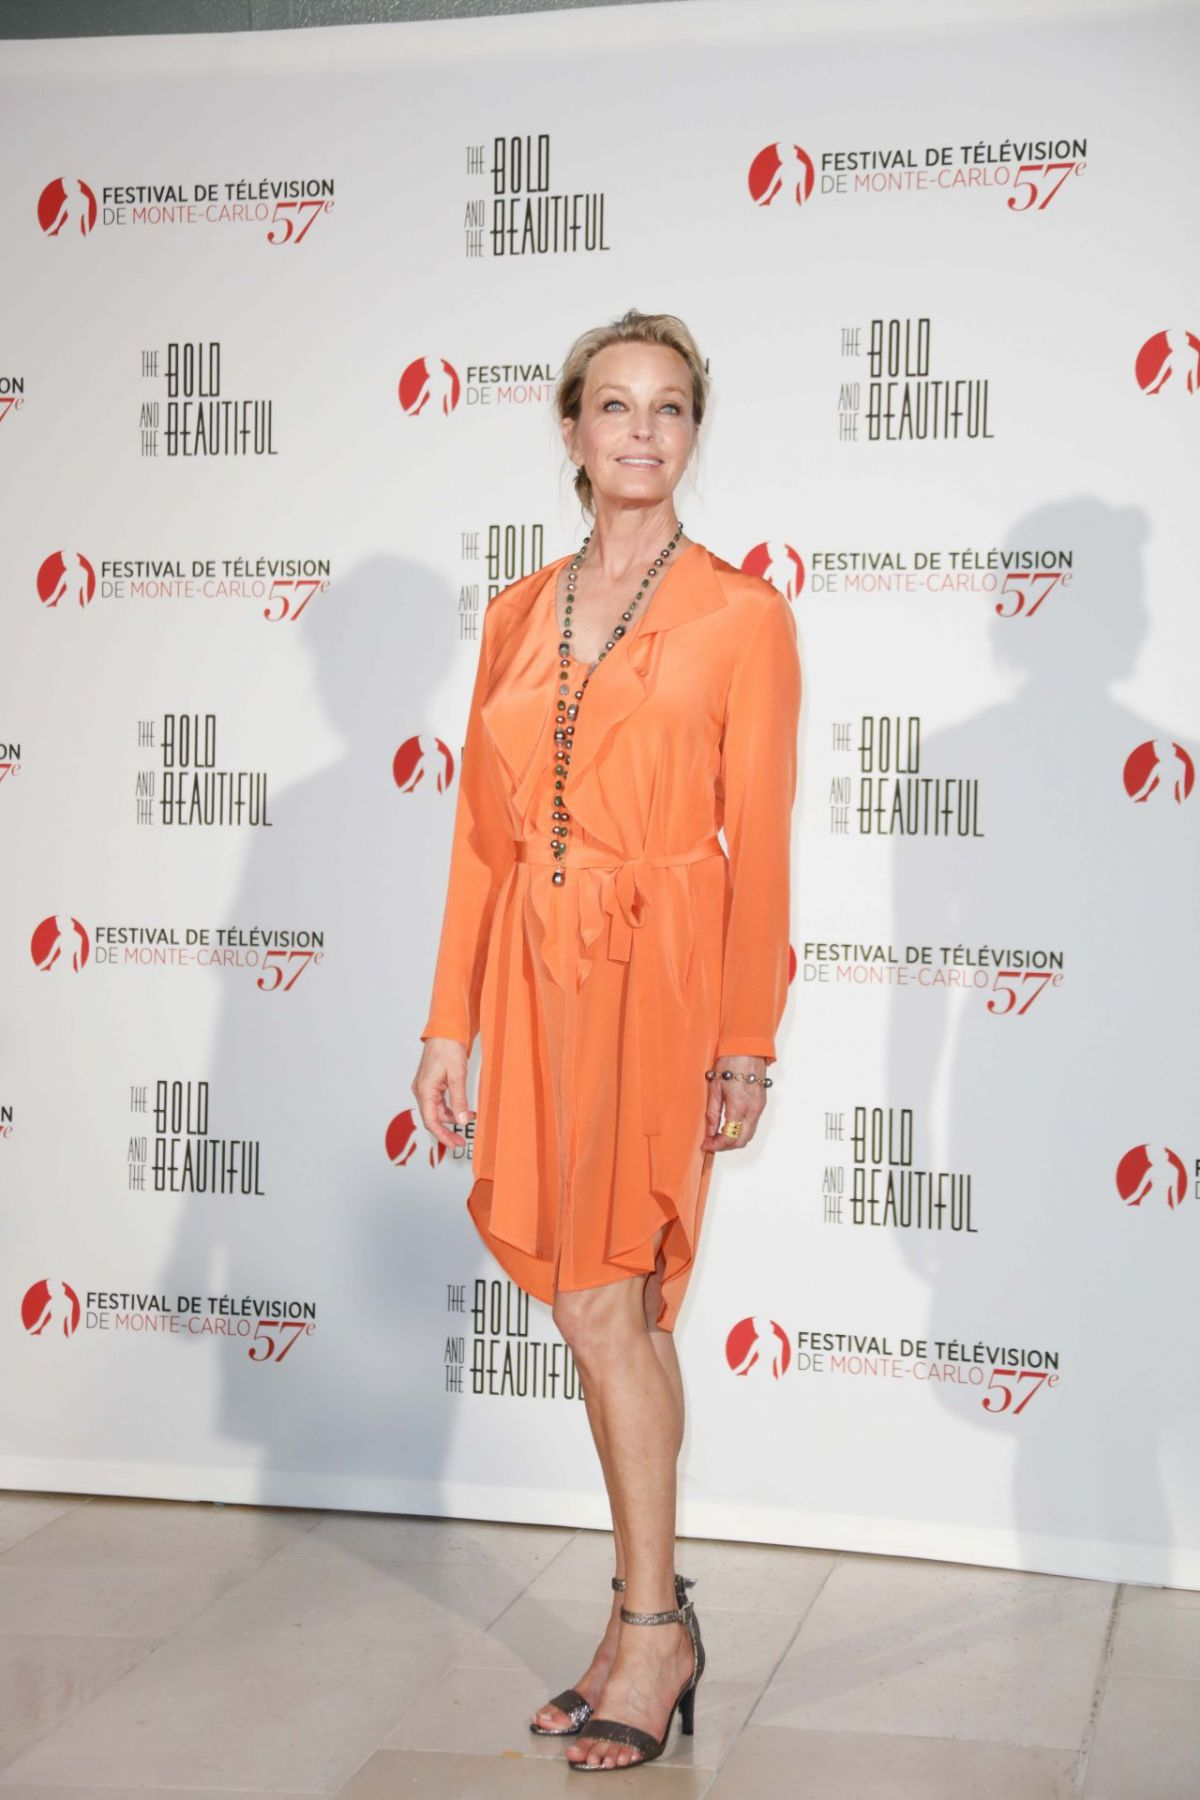 """Bo Derek At """"The Bold and the Beautiful"""" Anniversary Event at Monte Carlo TV Festival"""